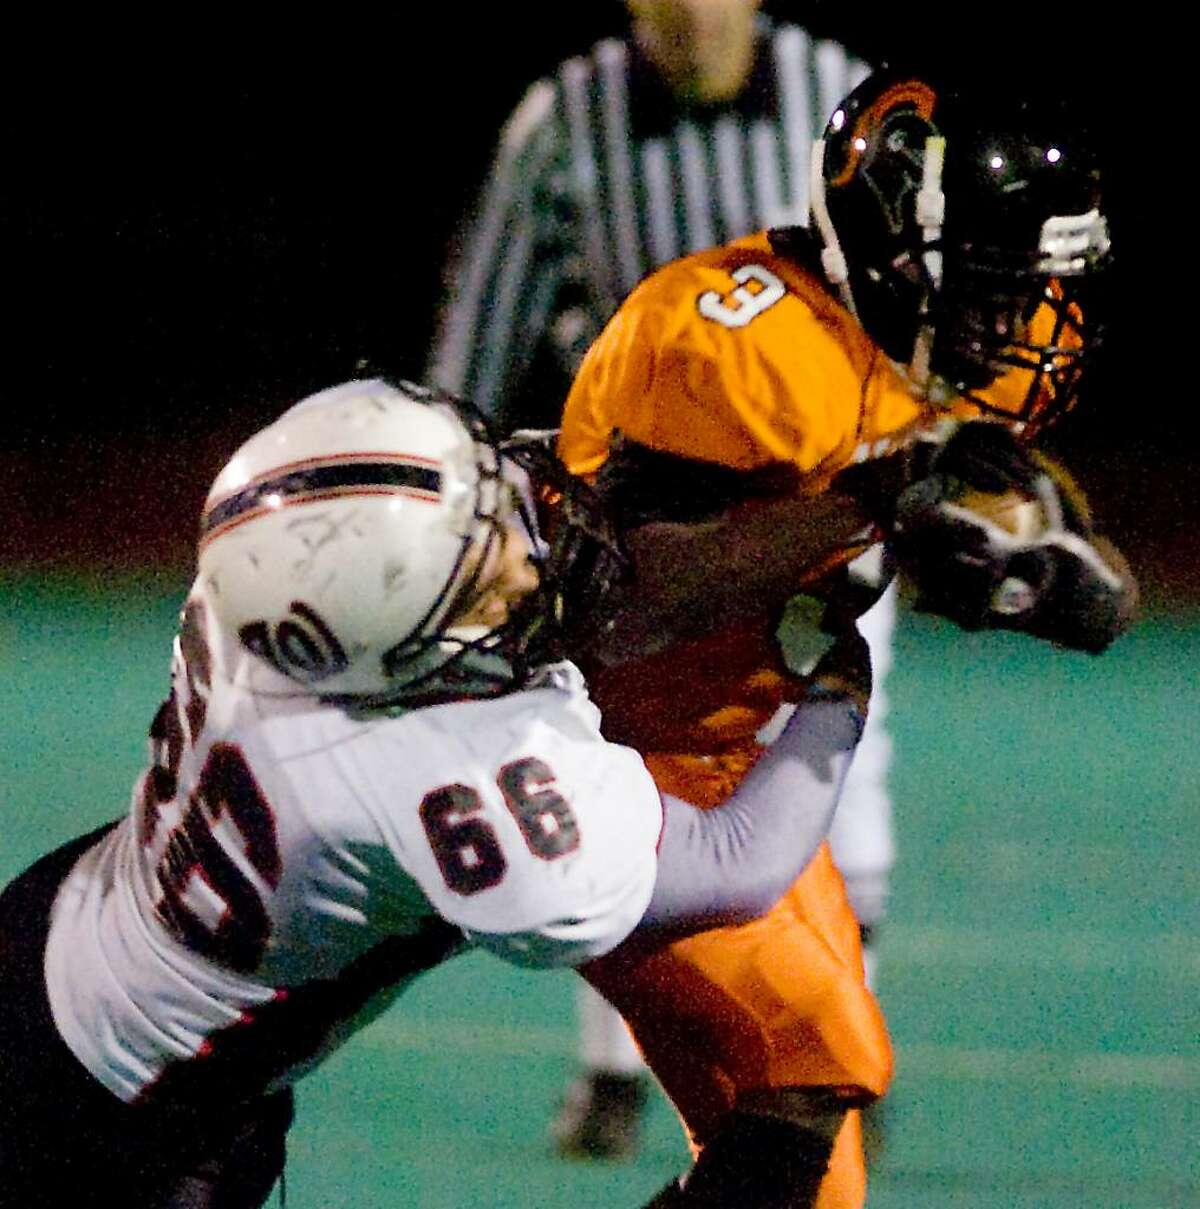 Stamford High's Mark Seward carries the ball against Fairfield Warde in football action in Stamford, Conn. on Friday, November 6, 2009.